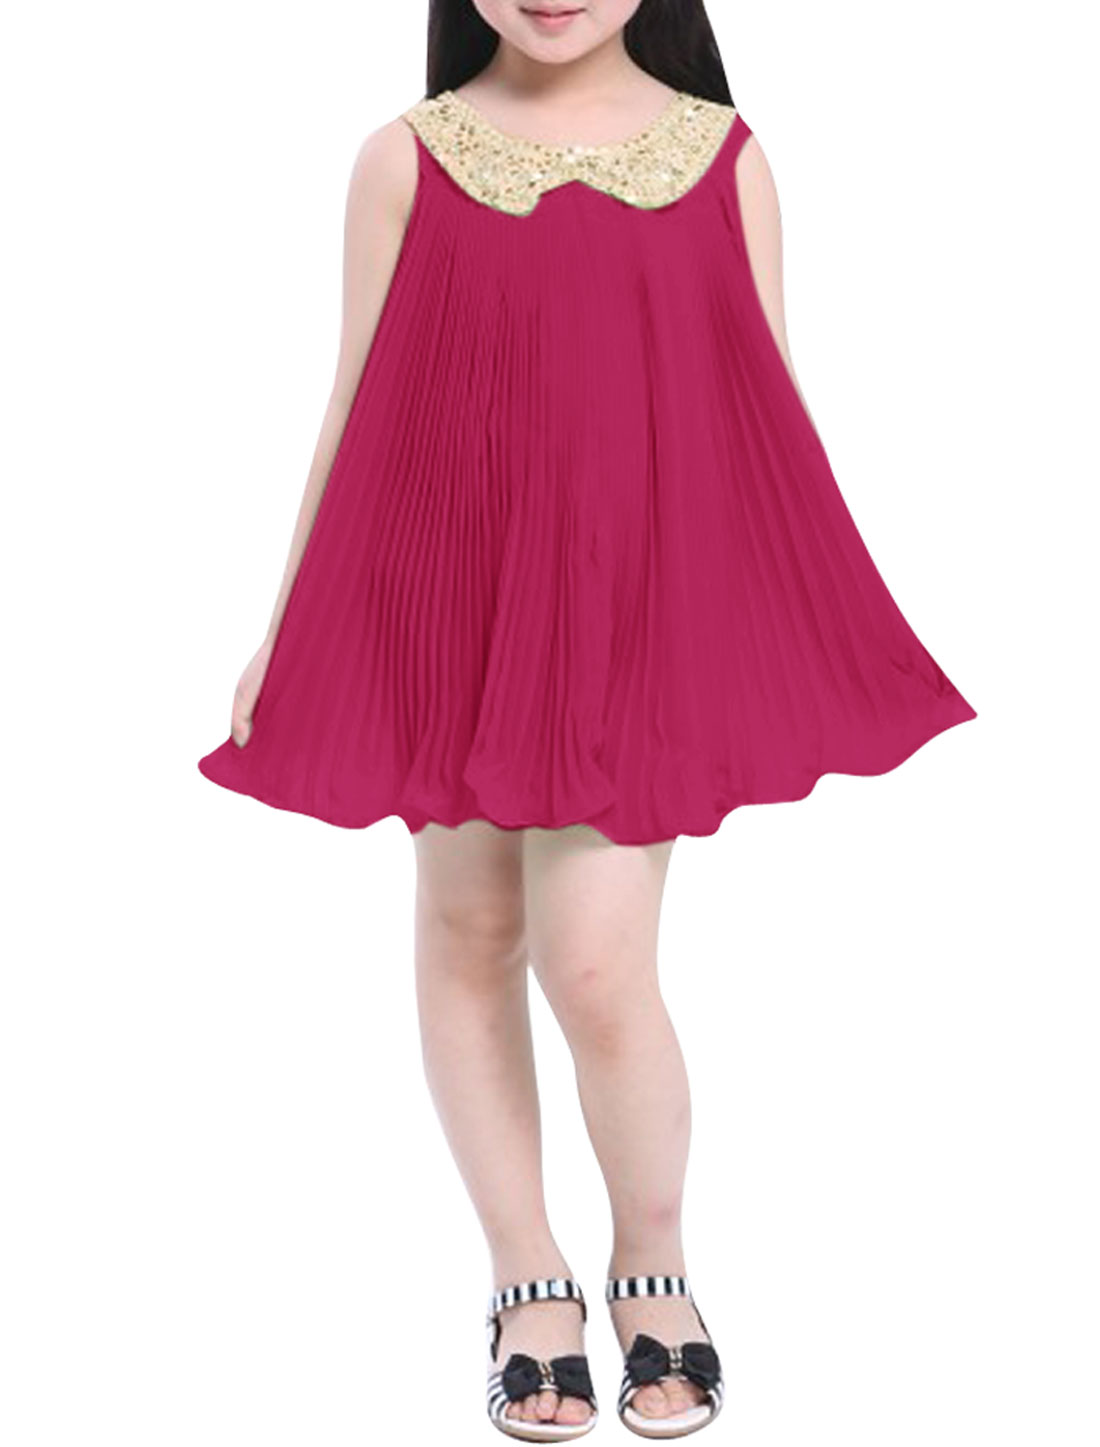 NEW Style Girls Crochet Peter Pan Collar Fuchsia Babydoll Dress 8